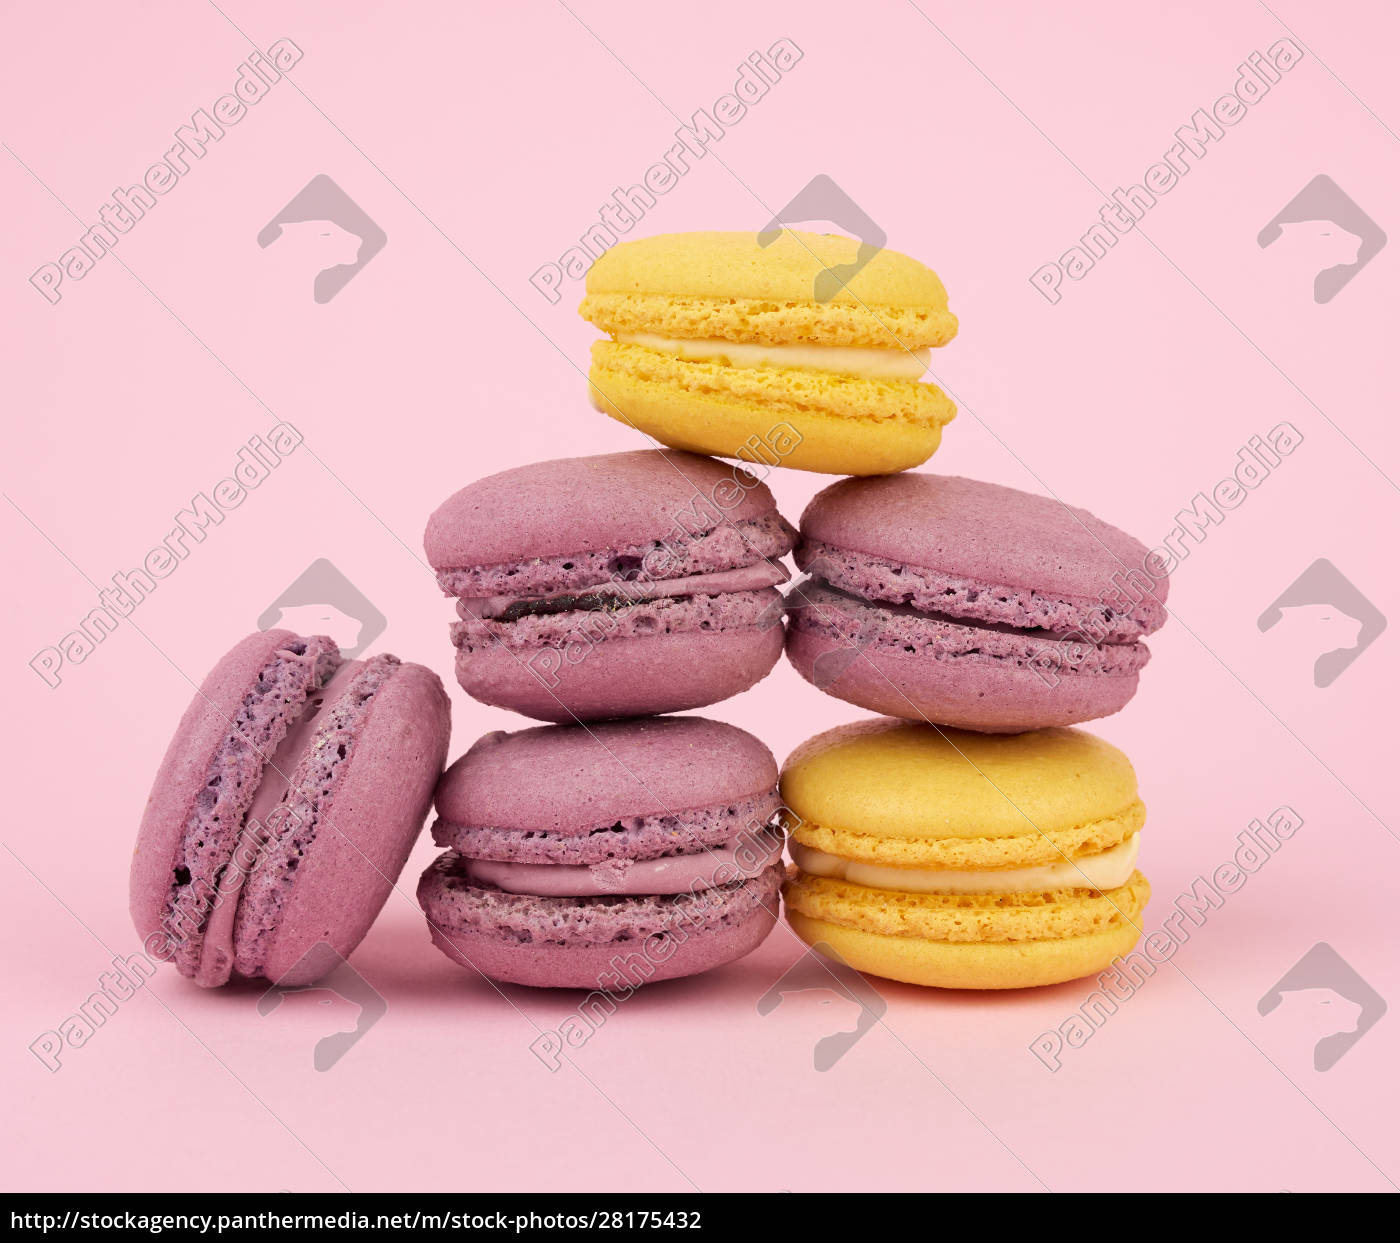 many, multi-colored, round, baked, macarons, cakes - 28175432